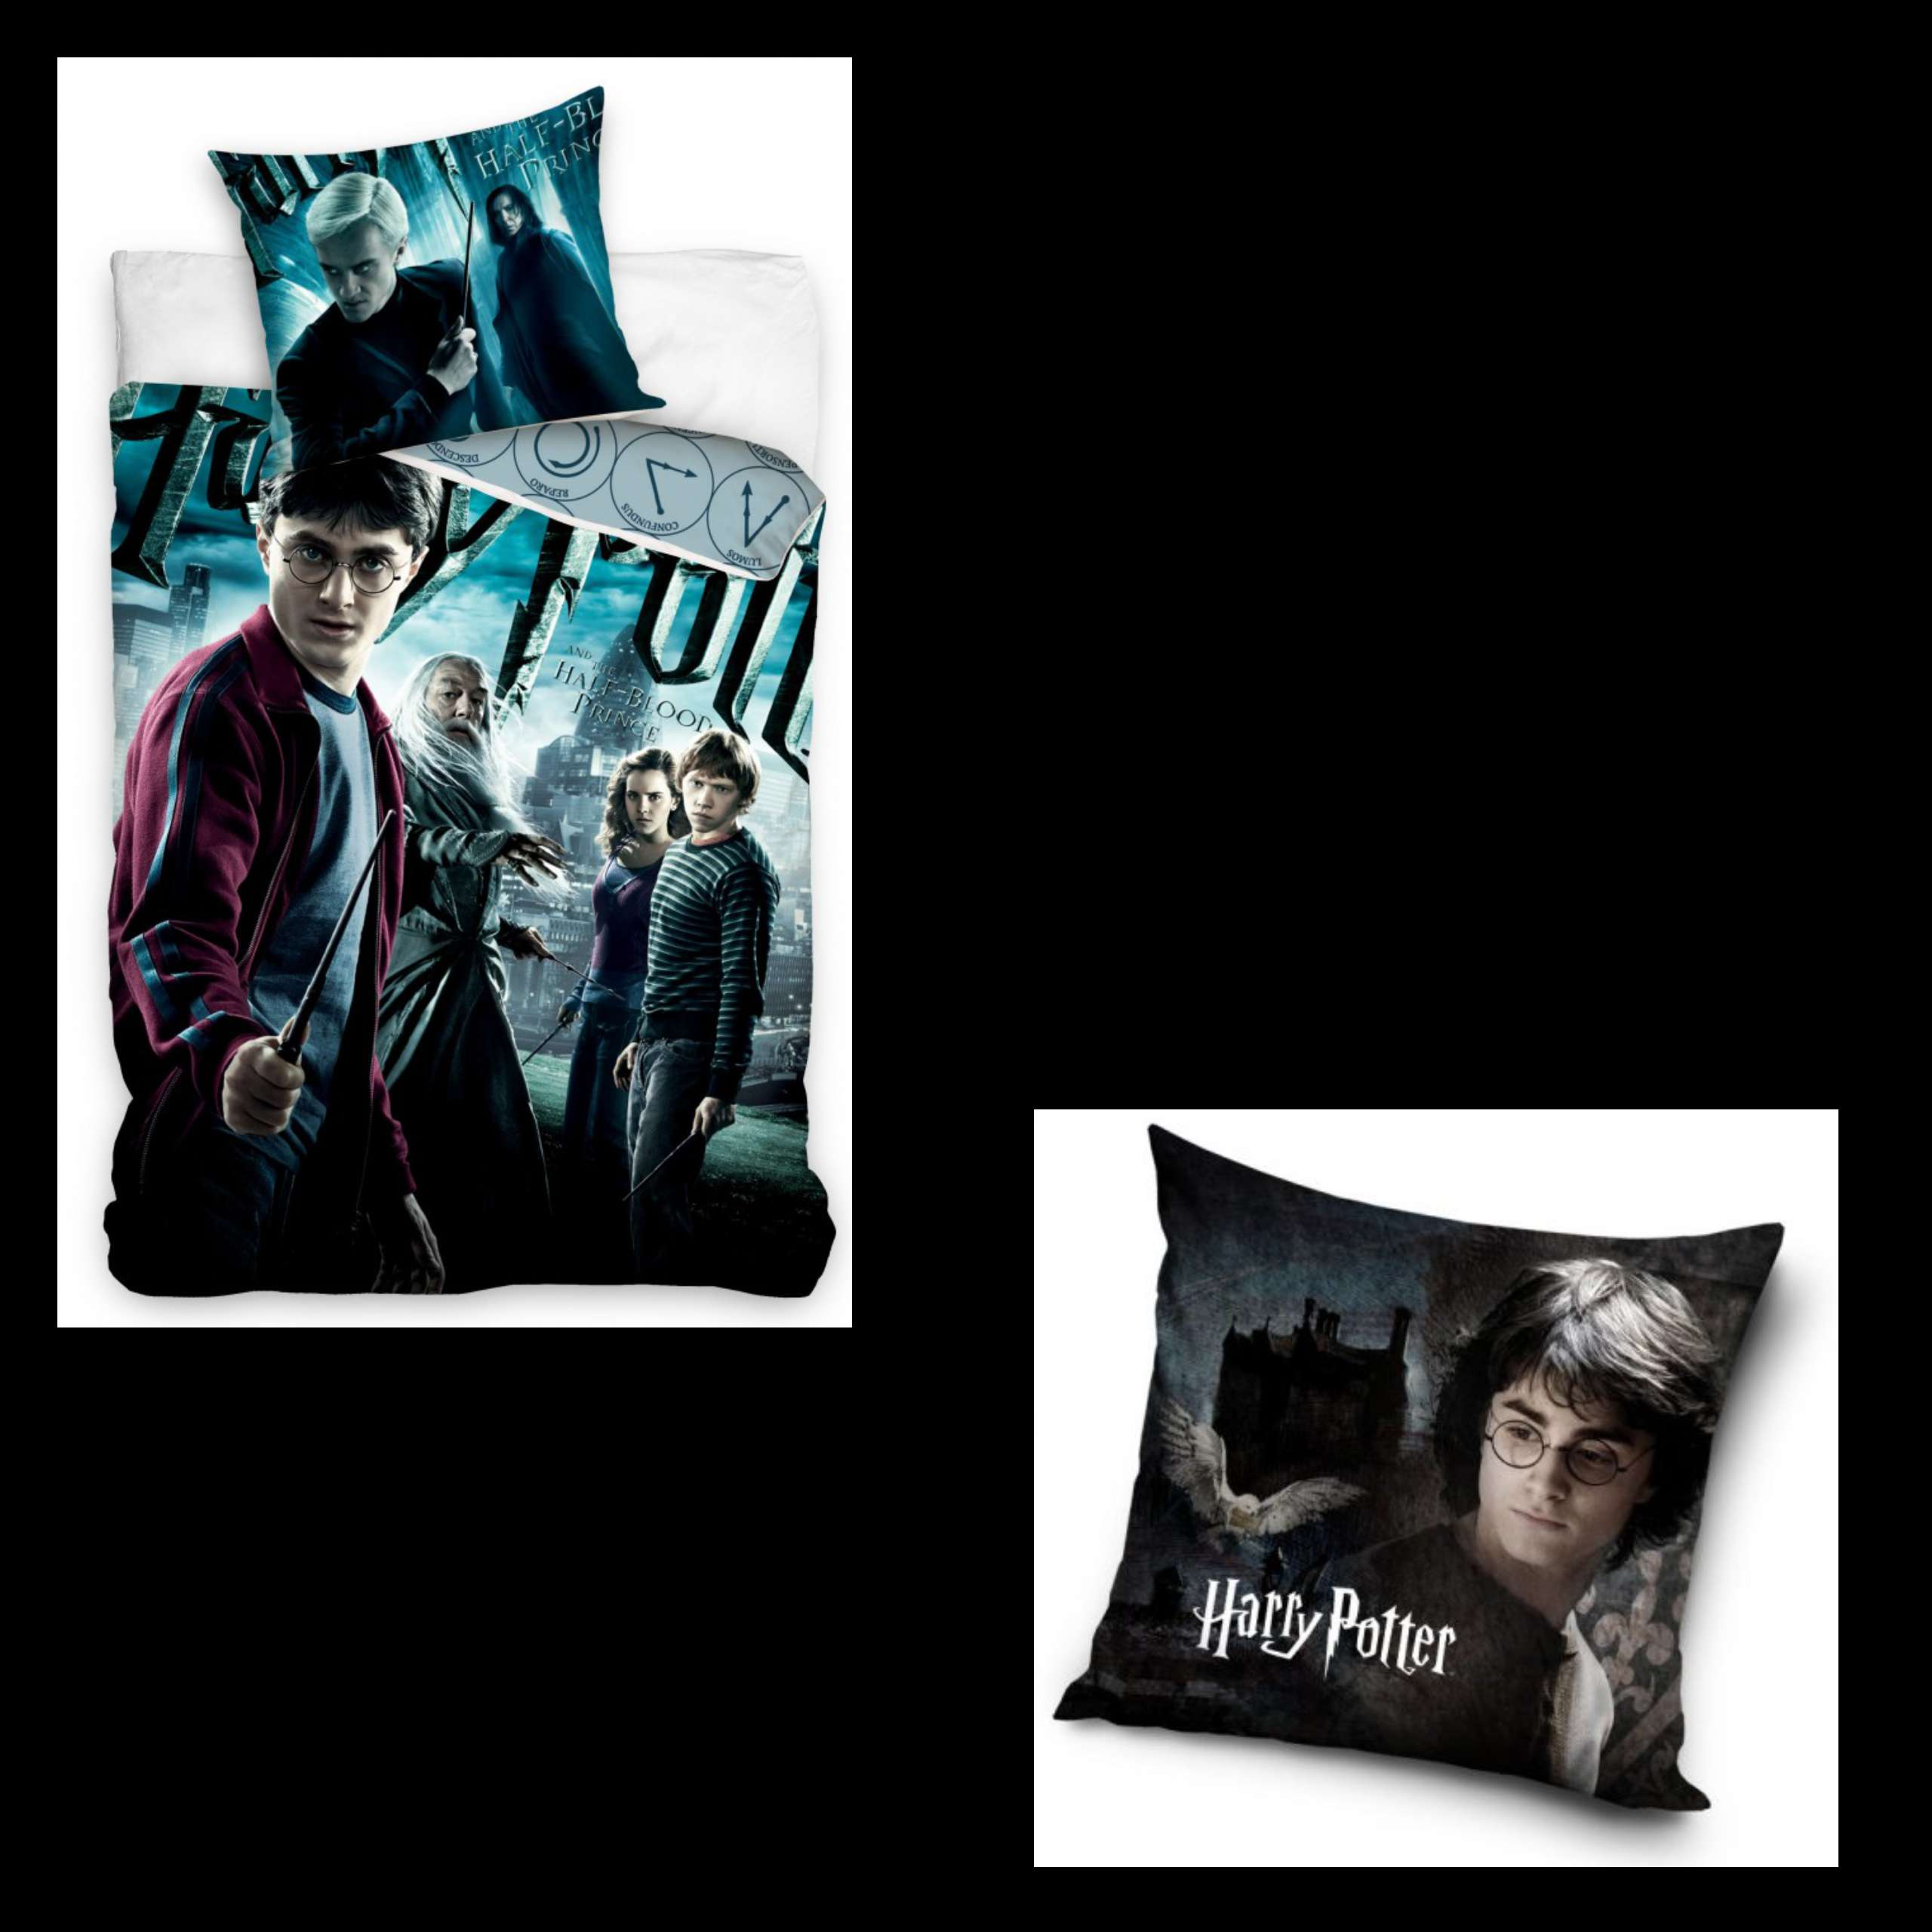 Harry Potter And The Half Blood Prince Duvet Set And Harry Potter Cushion Set